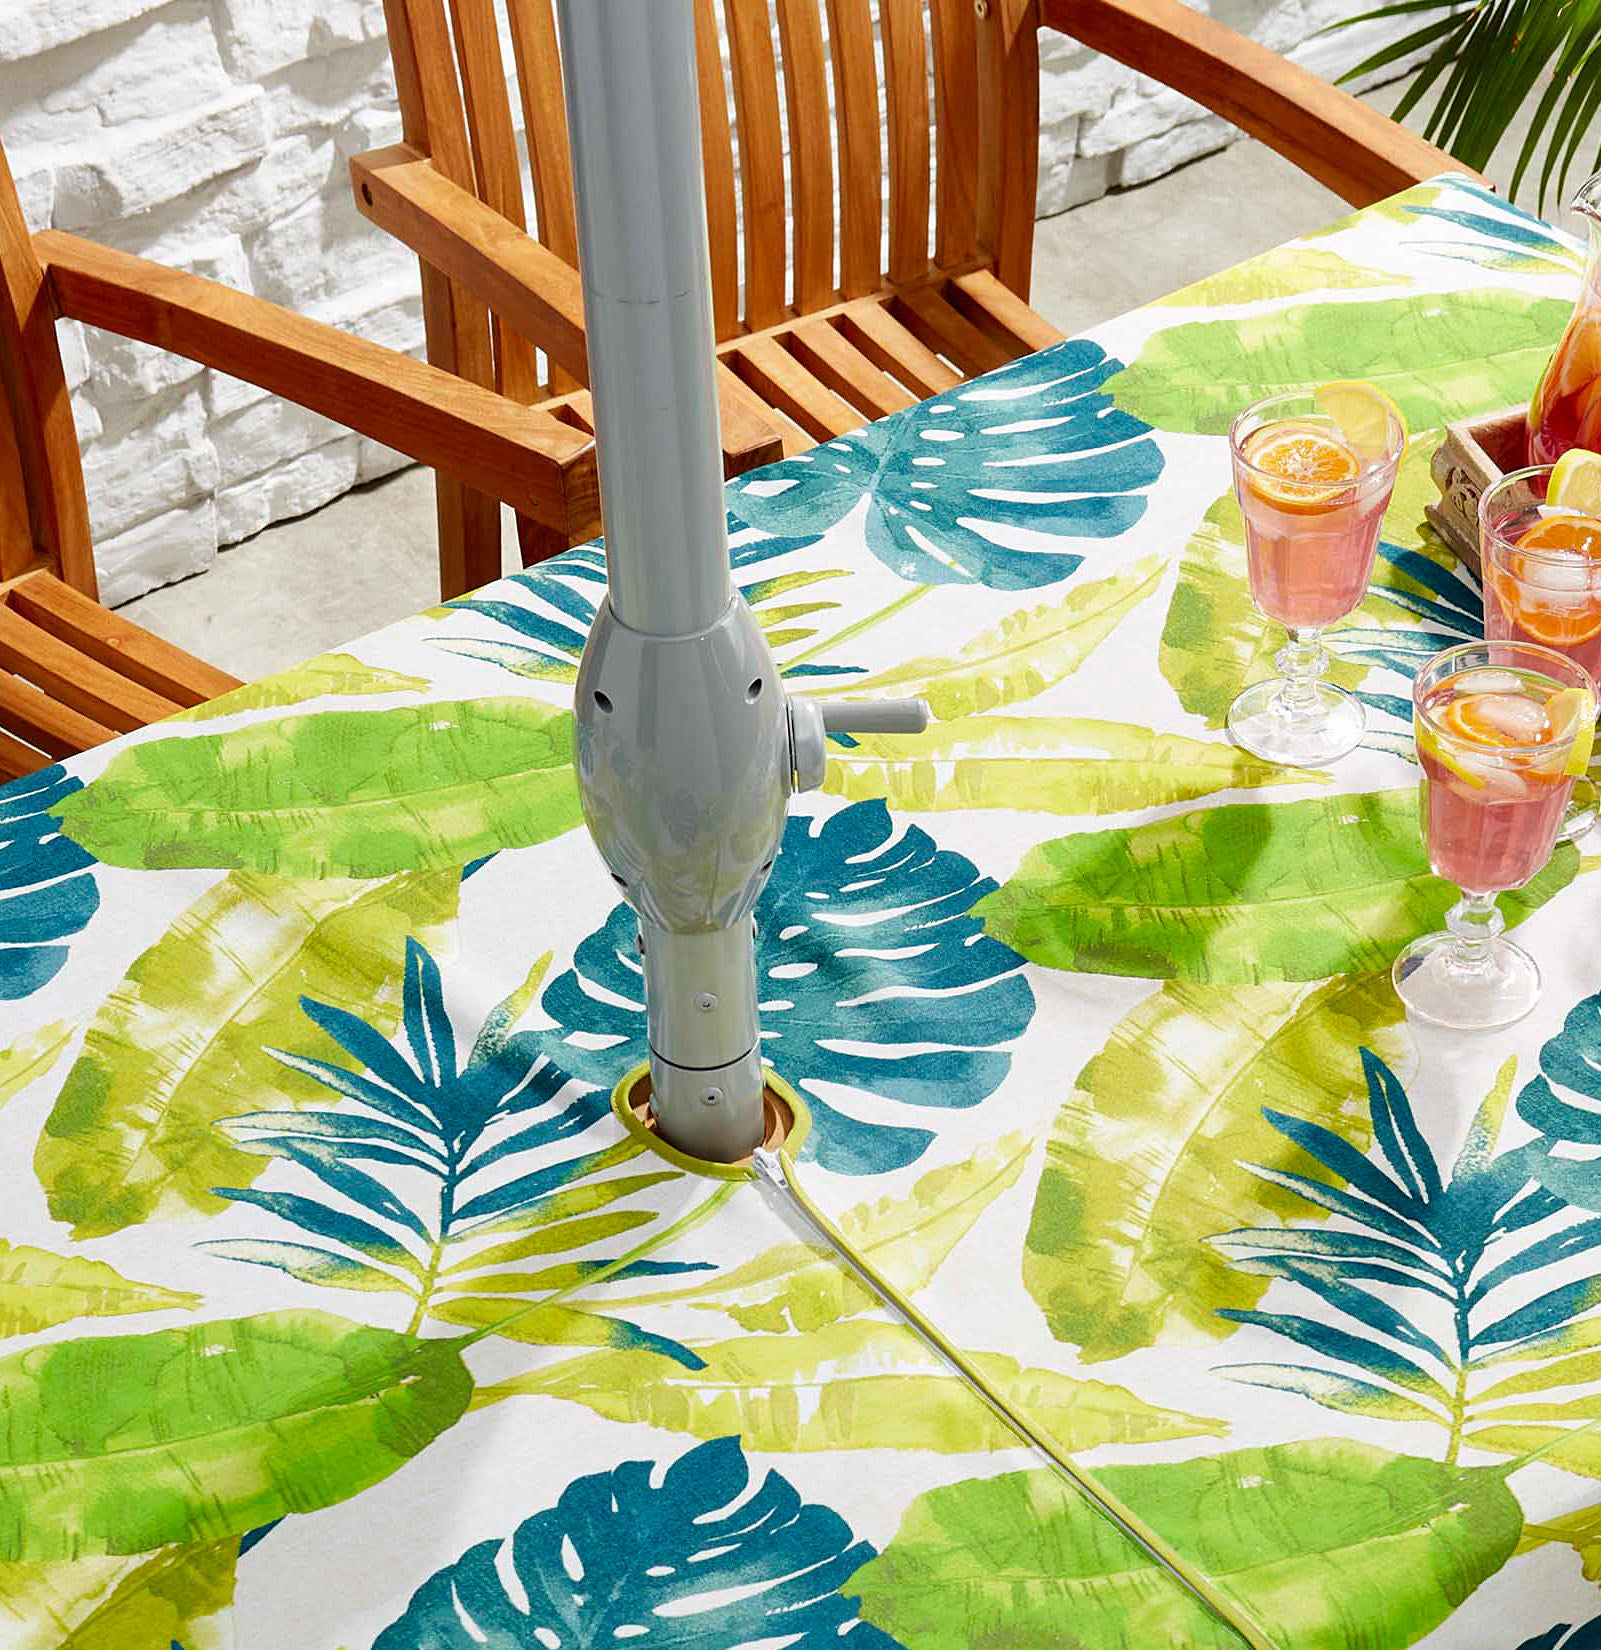 a botanical patterned table cloth on a patio table with a hole for the umbrella